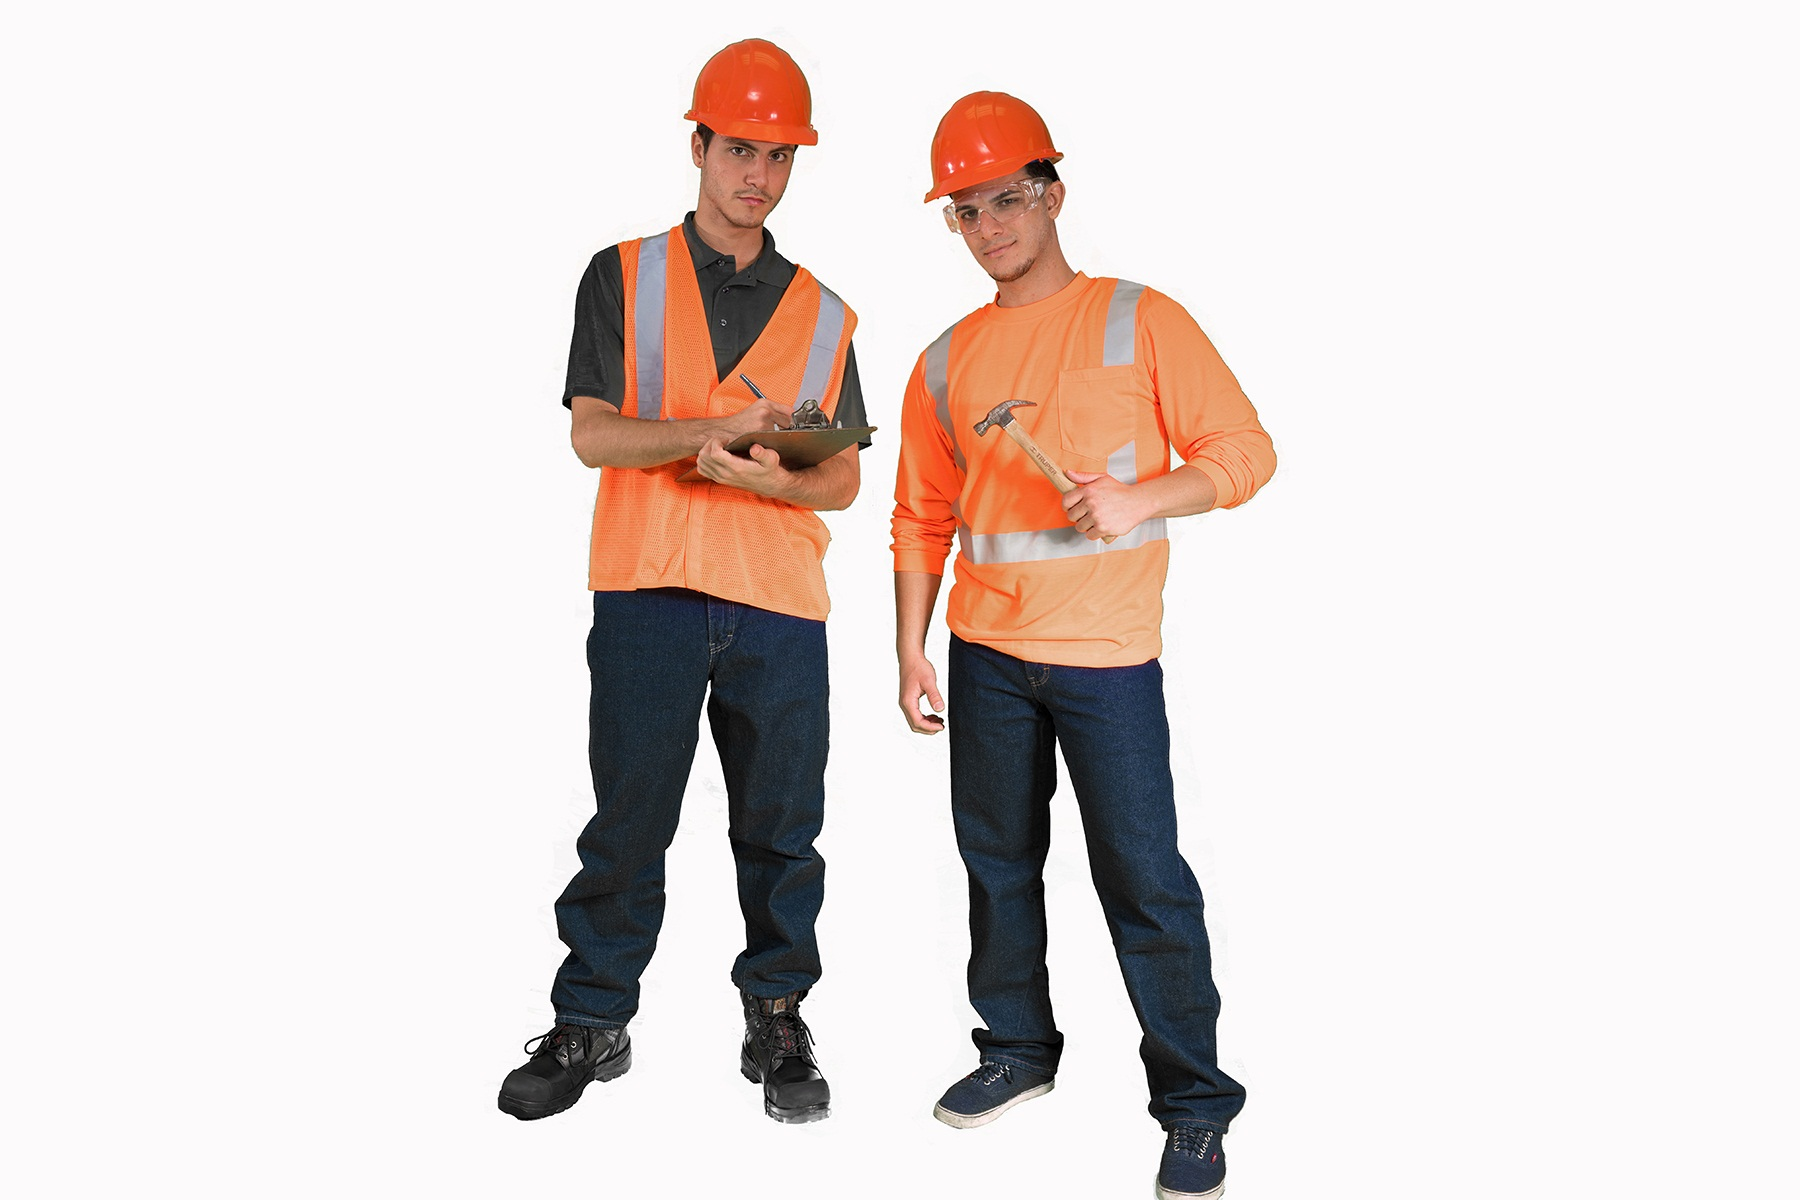 HIGH VIS REV.jpg